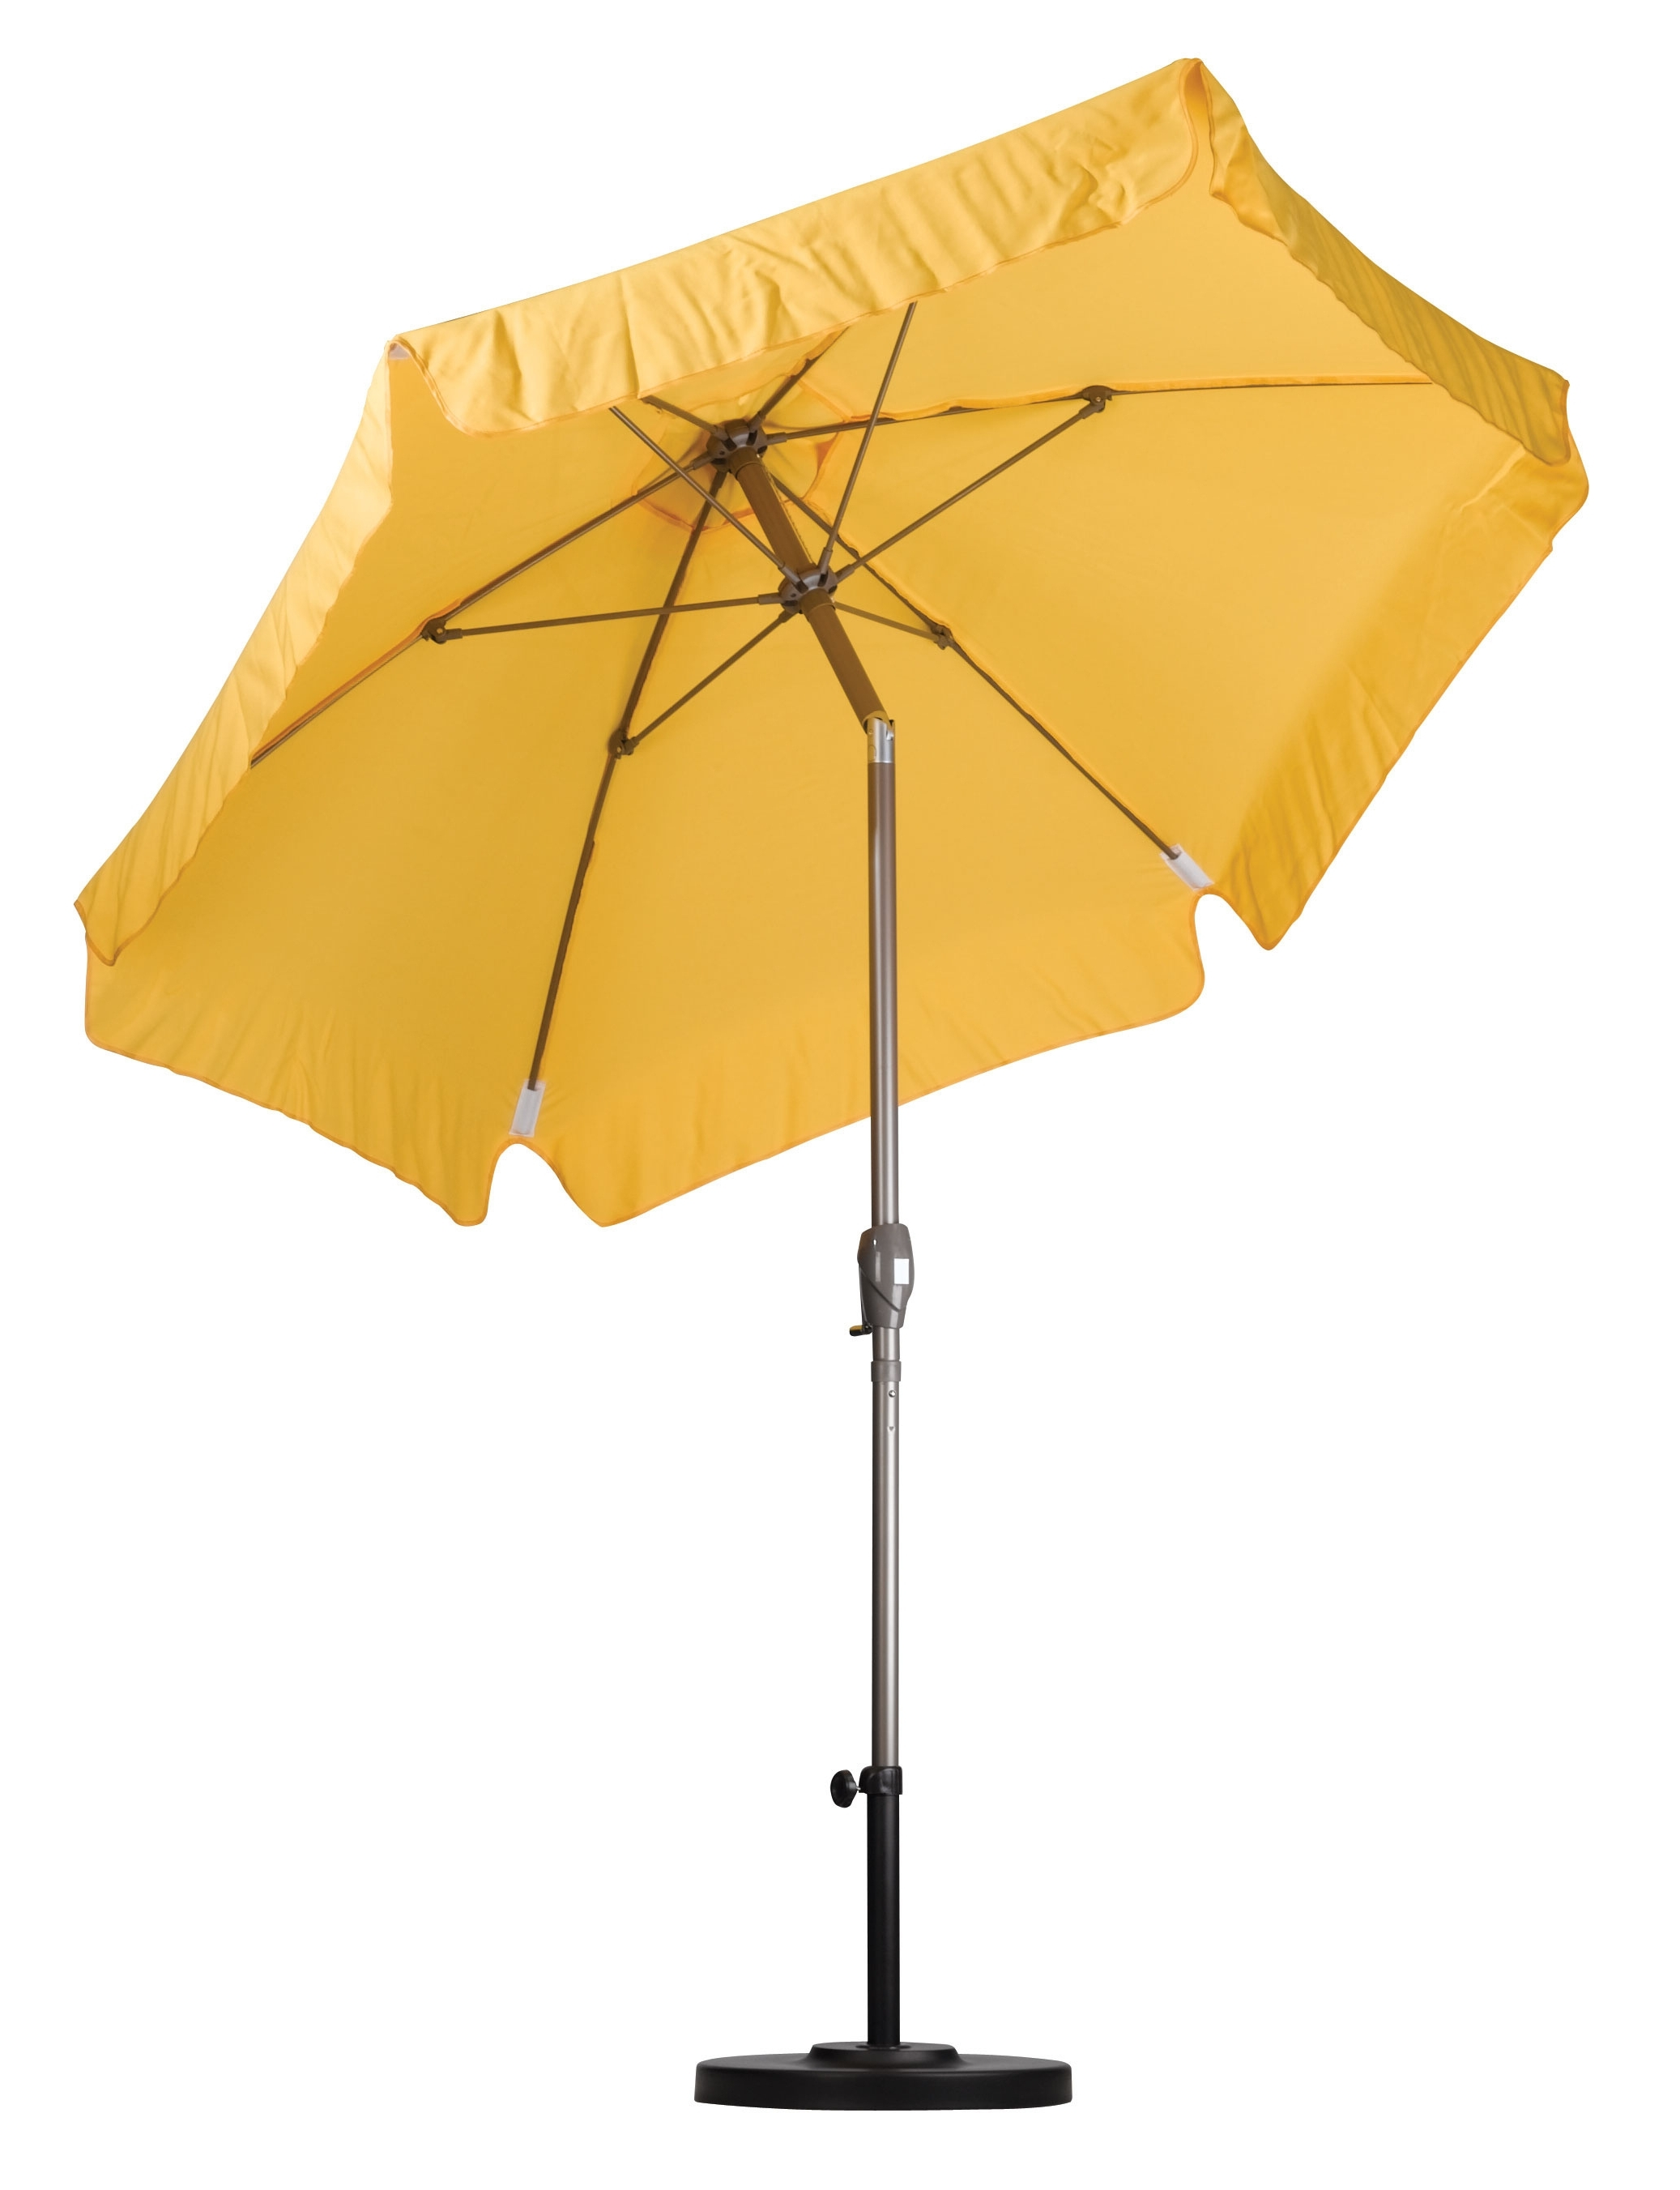 Yellow Patio Umbrellas With Regard To Famous Aluminum 7.5 Yellow Patio Market Umbrella With Stand, Canopy, Outdoor (Gallery 5 of 20)